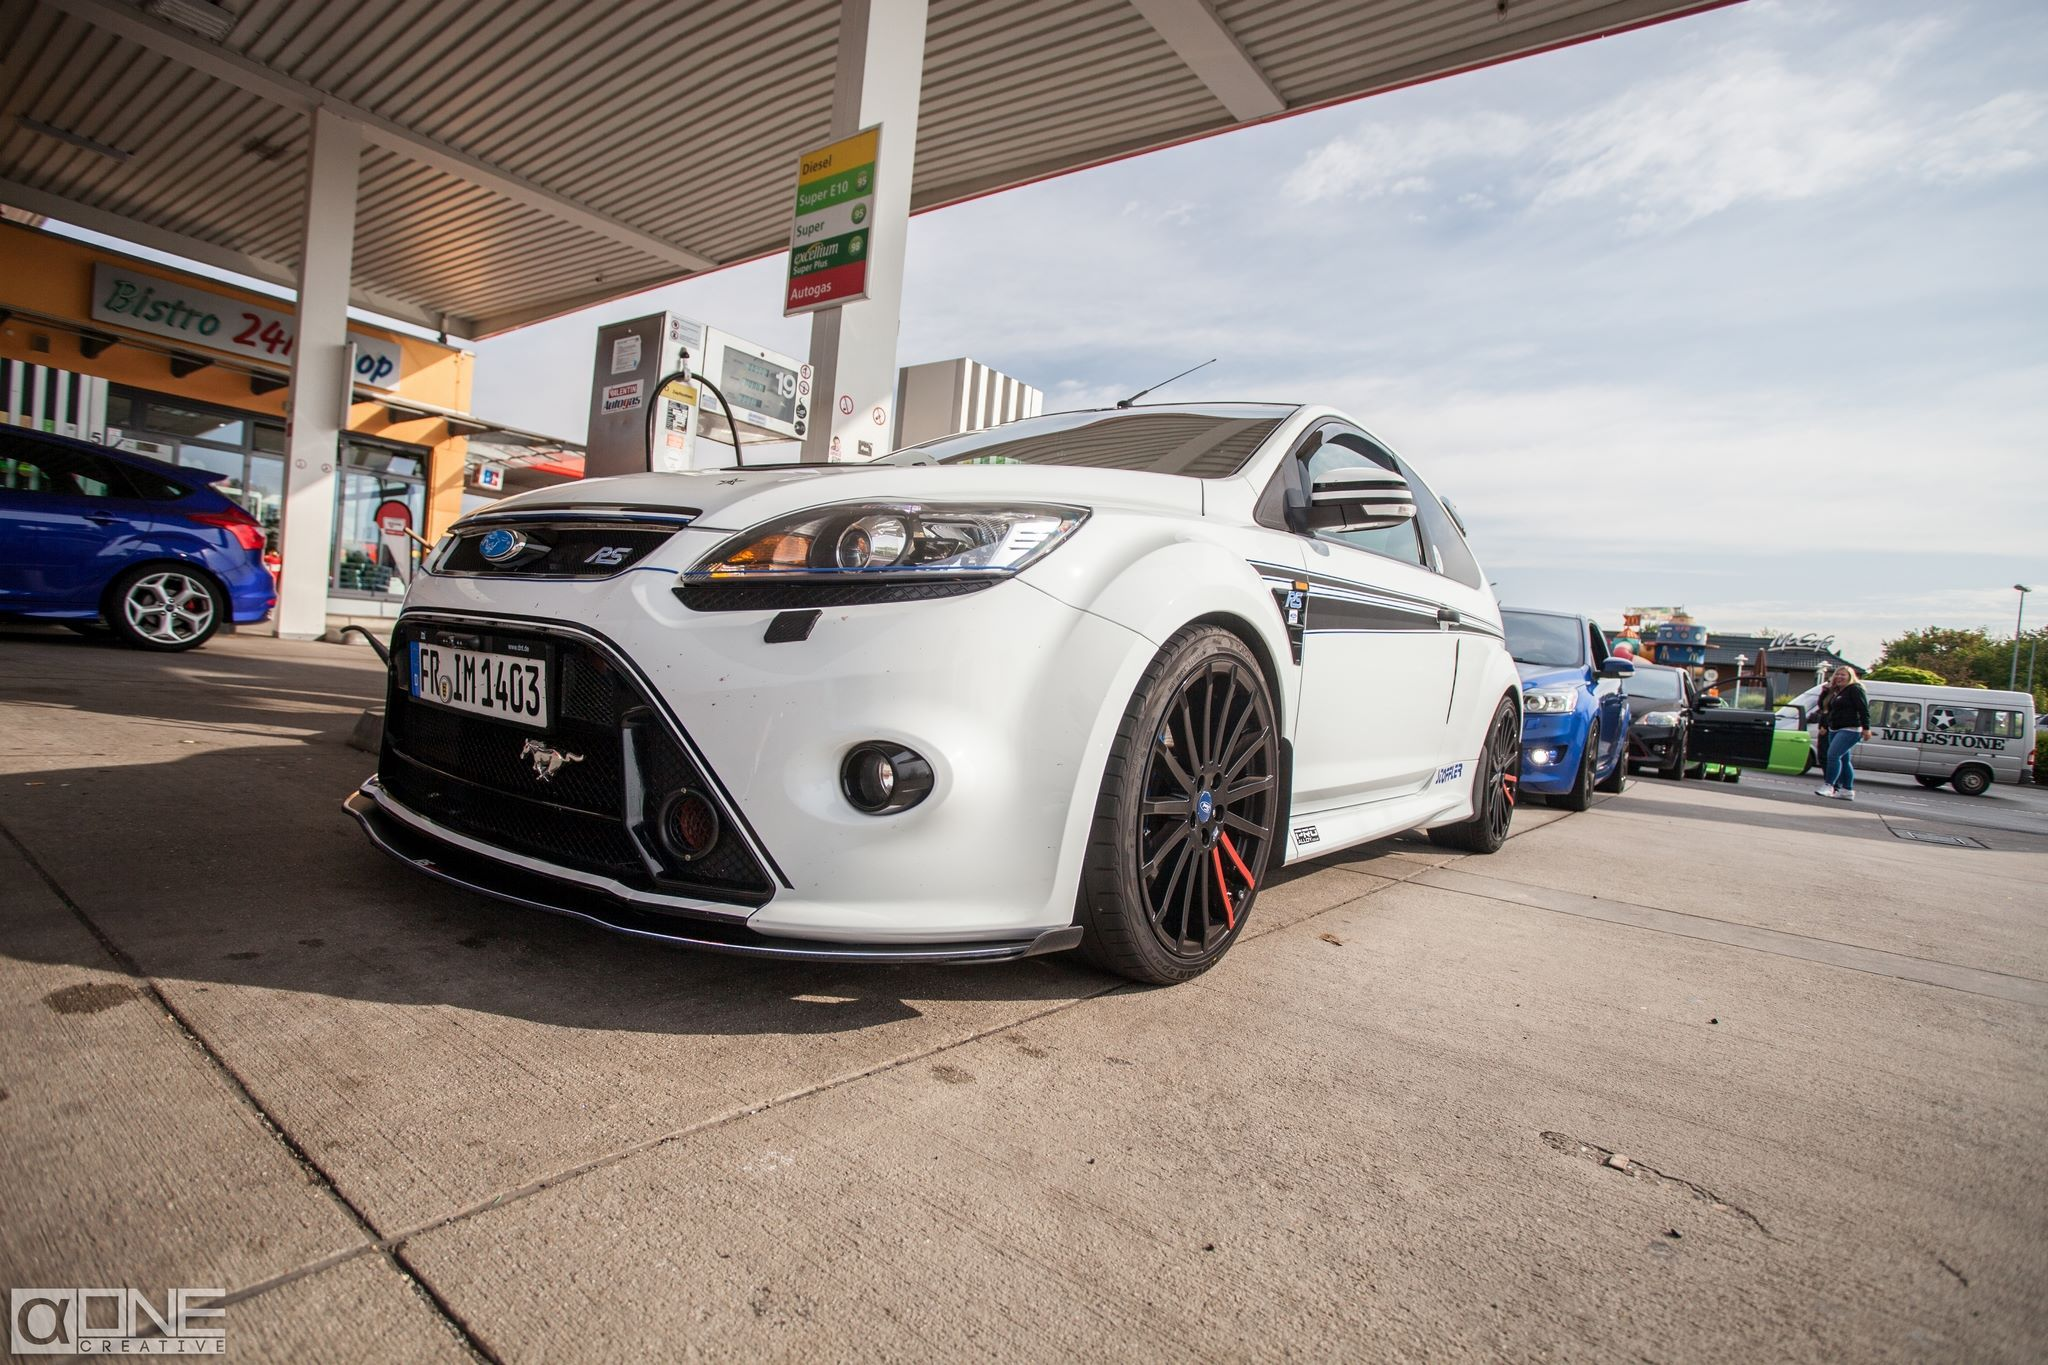 Ford Focus Rs Mk2 Tuning Ford Focus Rs Pinterest